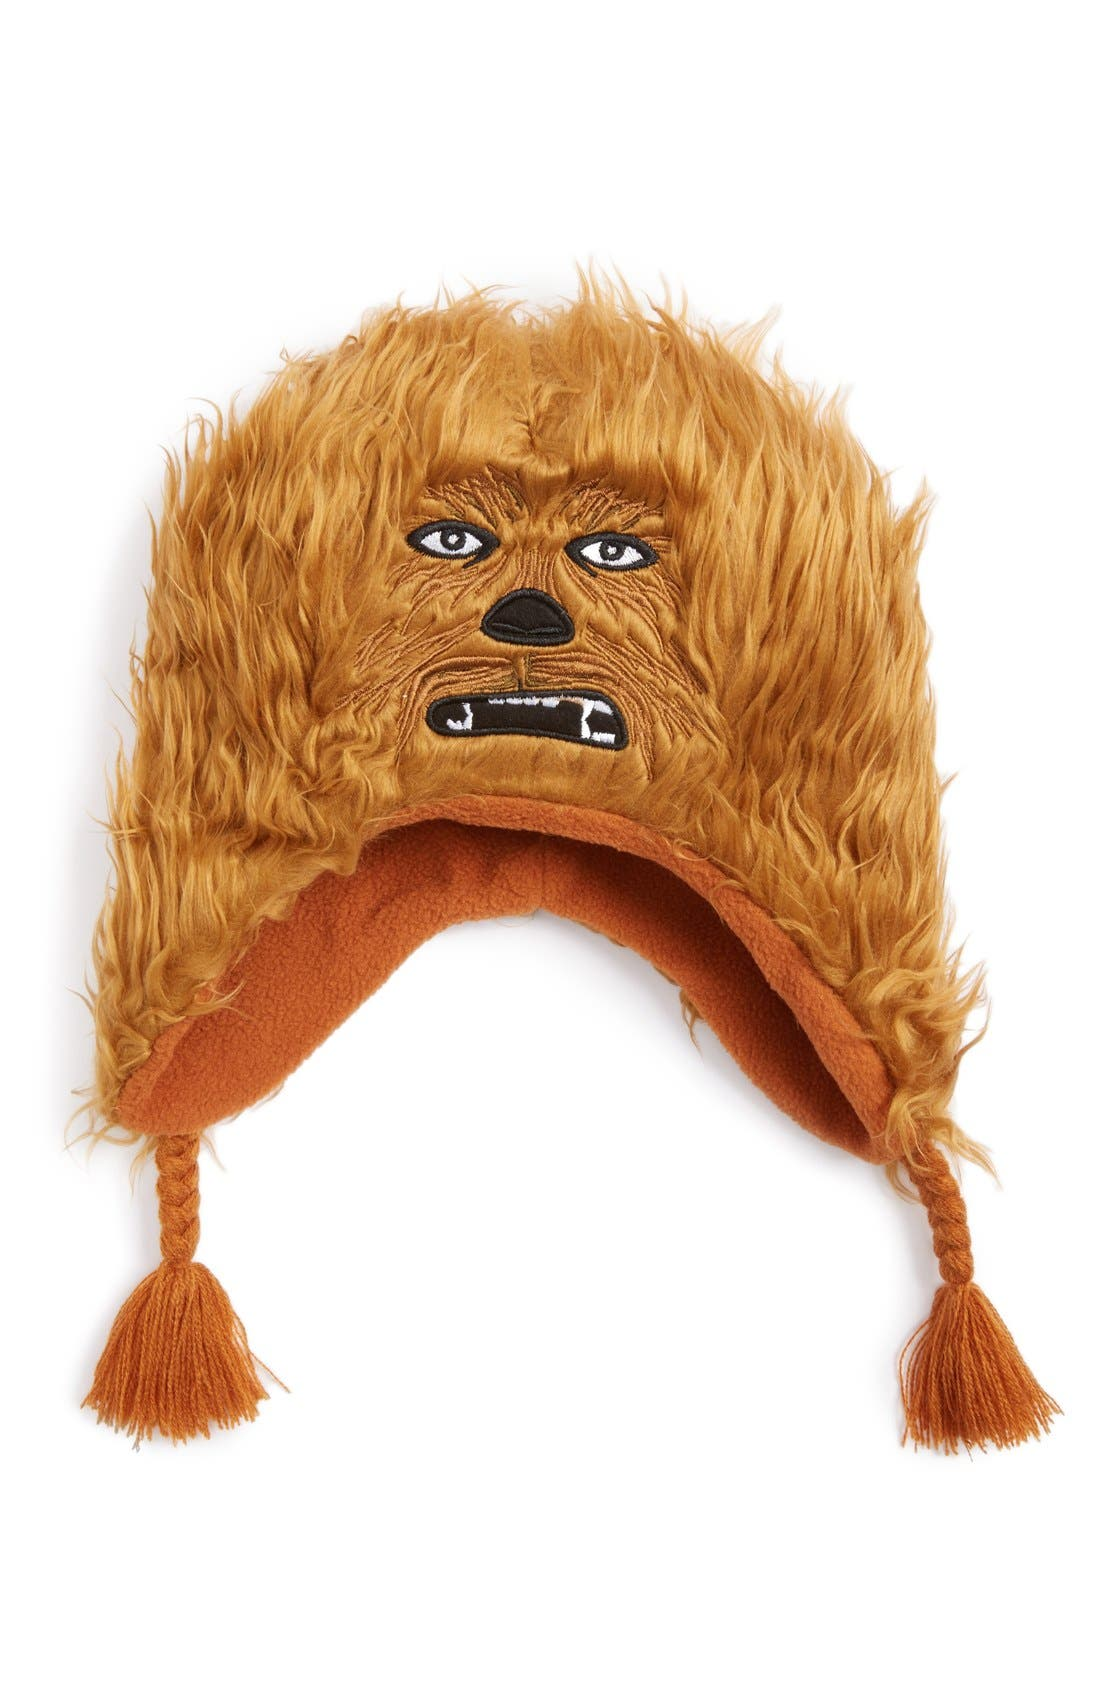 NOLAN GLOVE,                             Star Wars<sup>™</sup> Chewbacca Hat,                             Main thumbnail 1, color,                             200